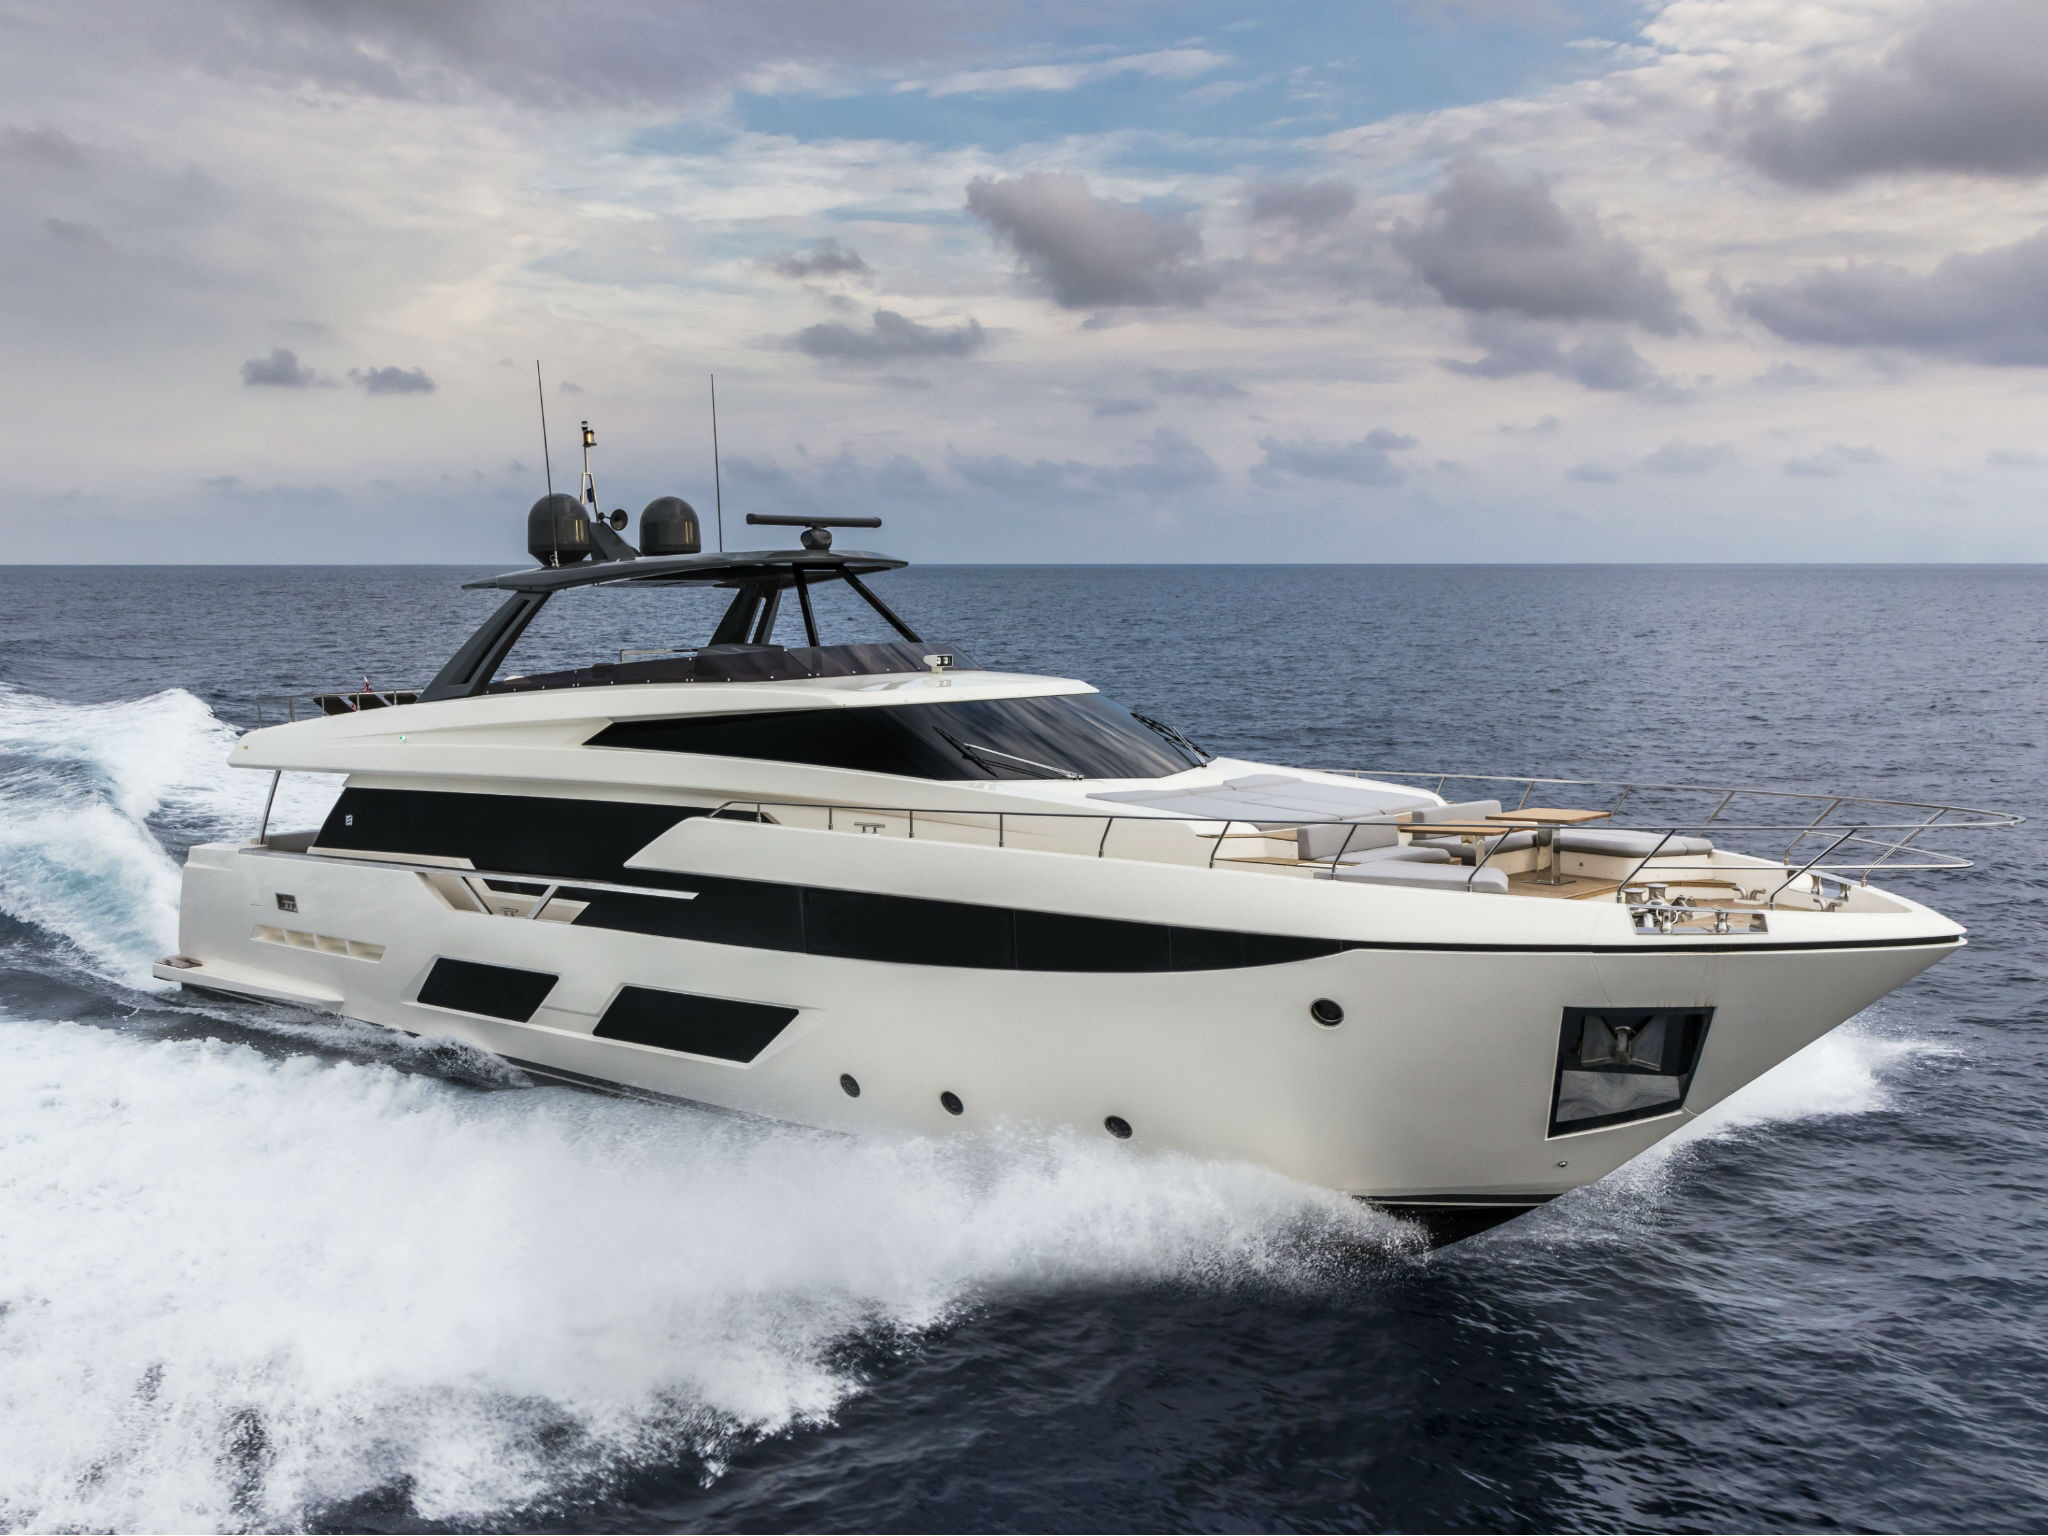 ferretti yachts 920 ferretti group JMA Yachting Port Fréjus Var vente location neuf occasion places de port